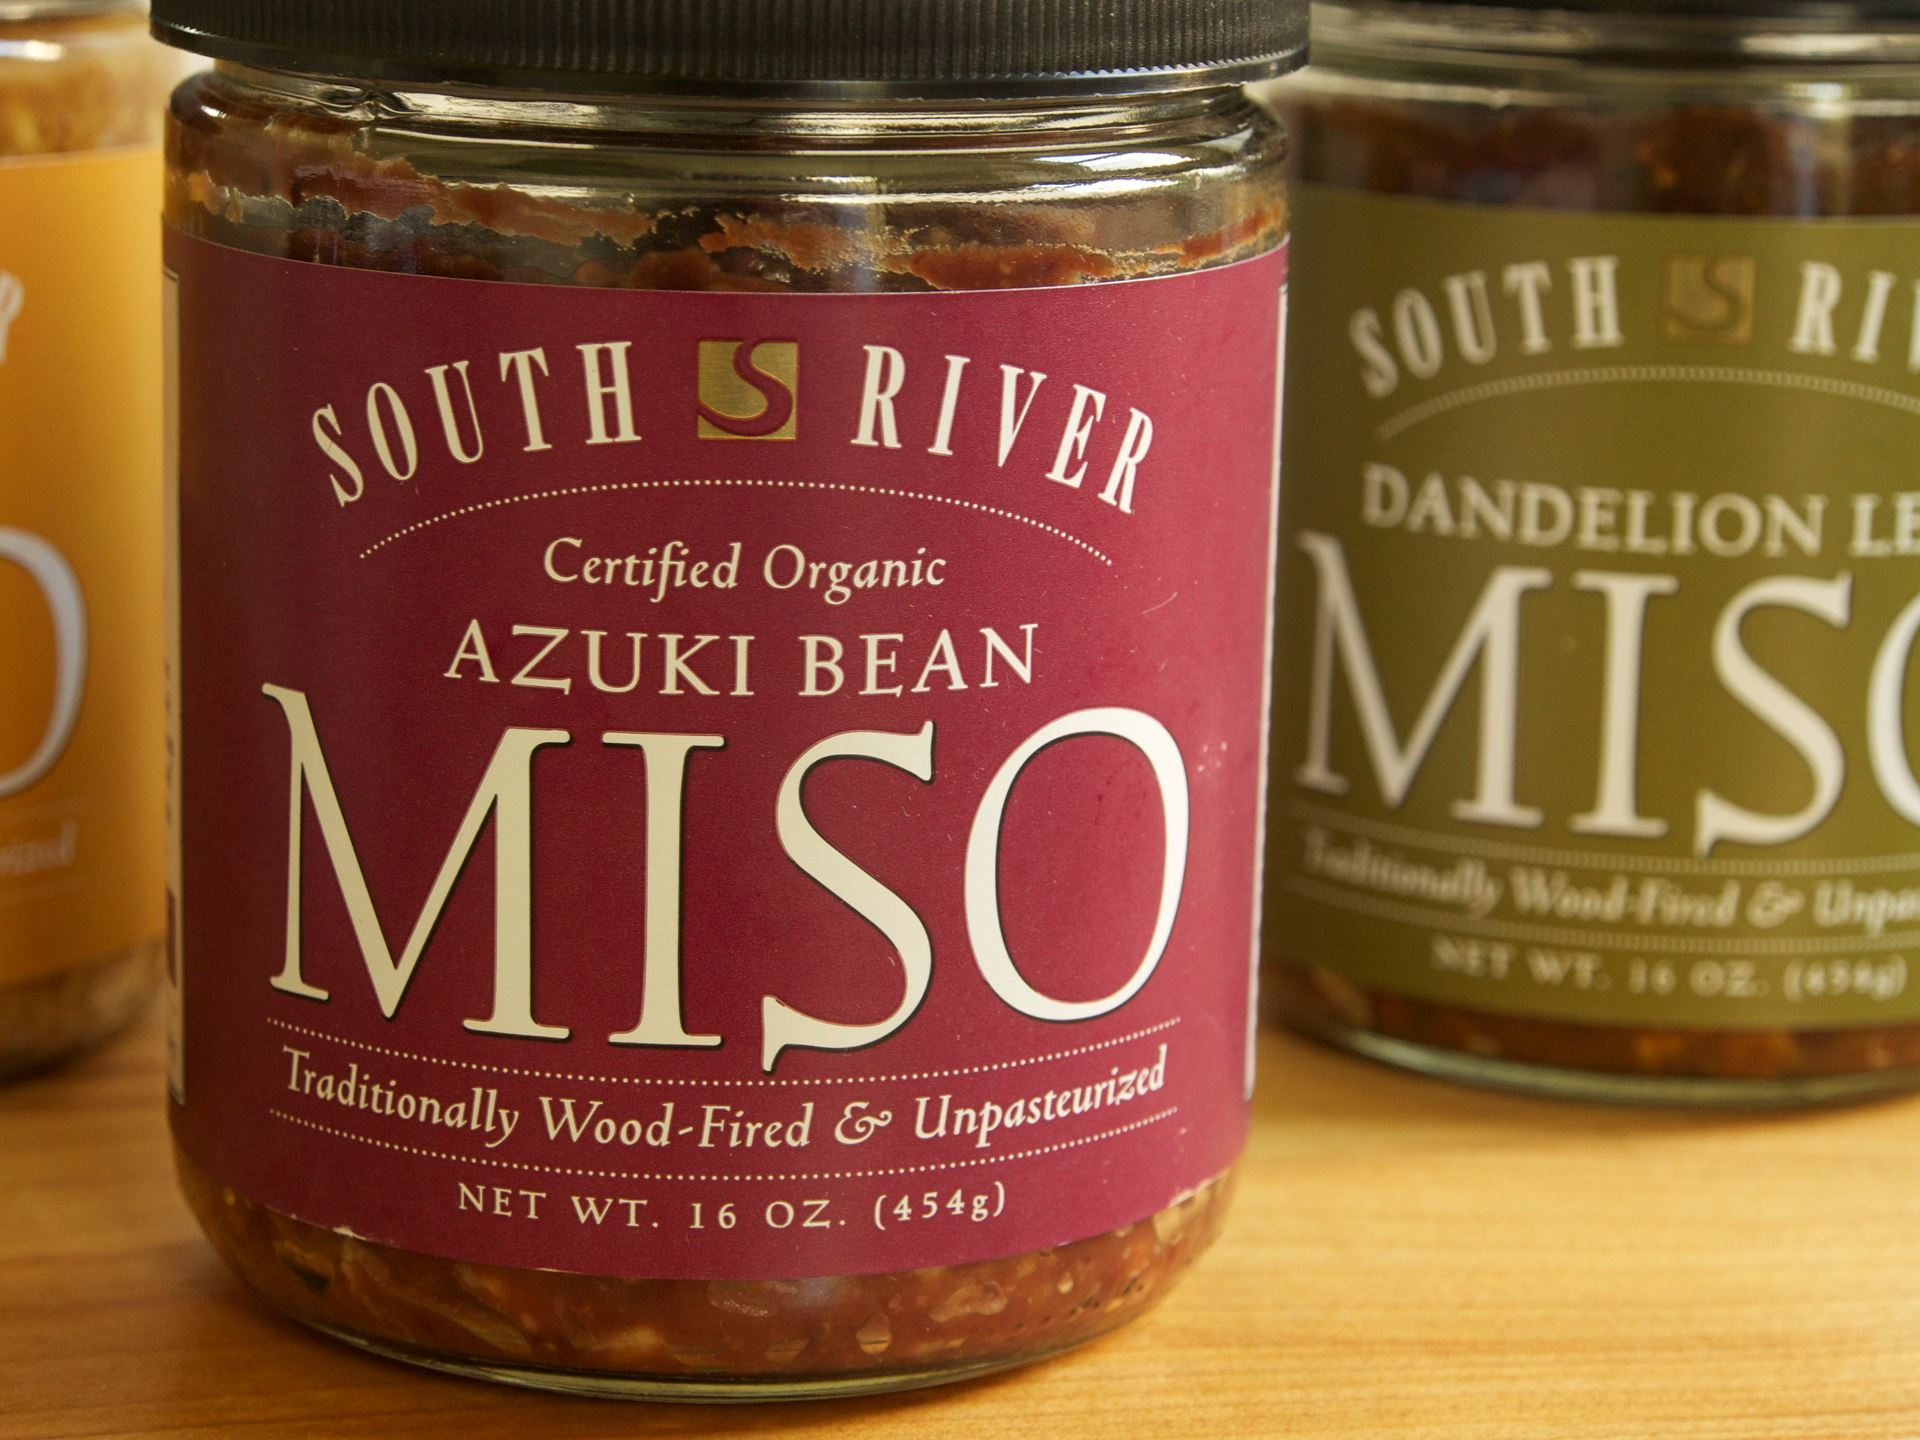 Picture of South River Azuki Bean Miso